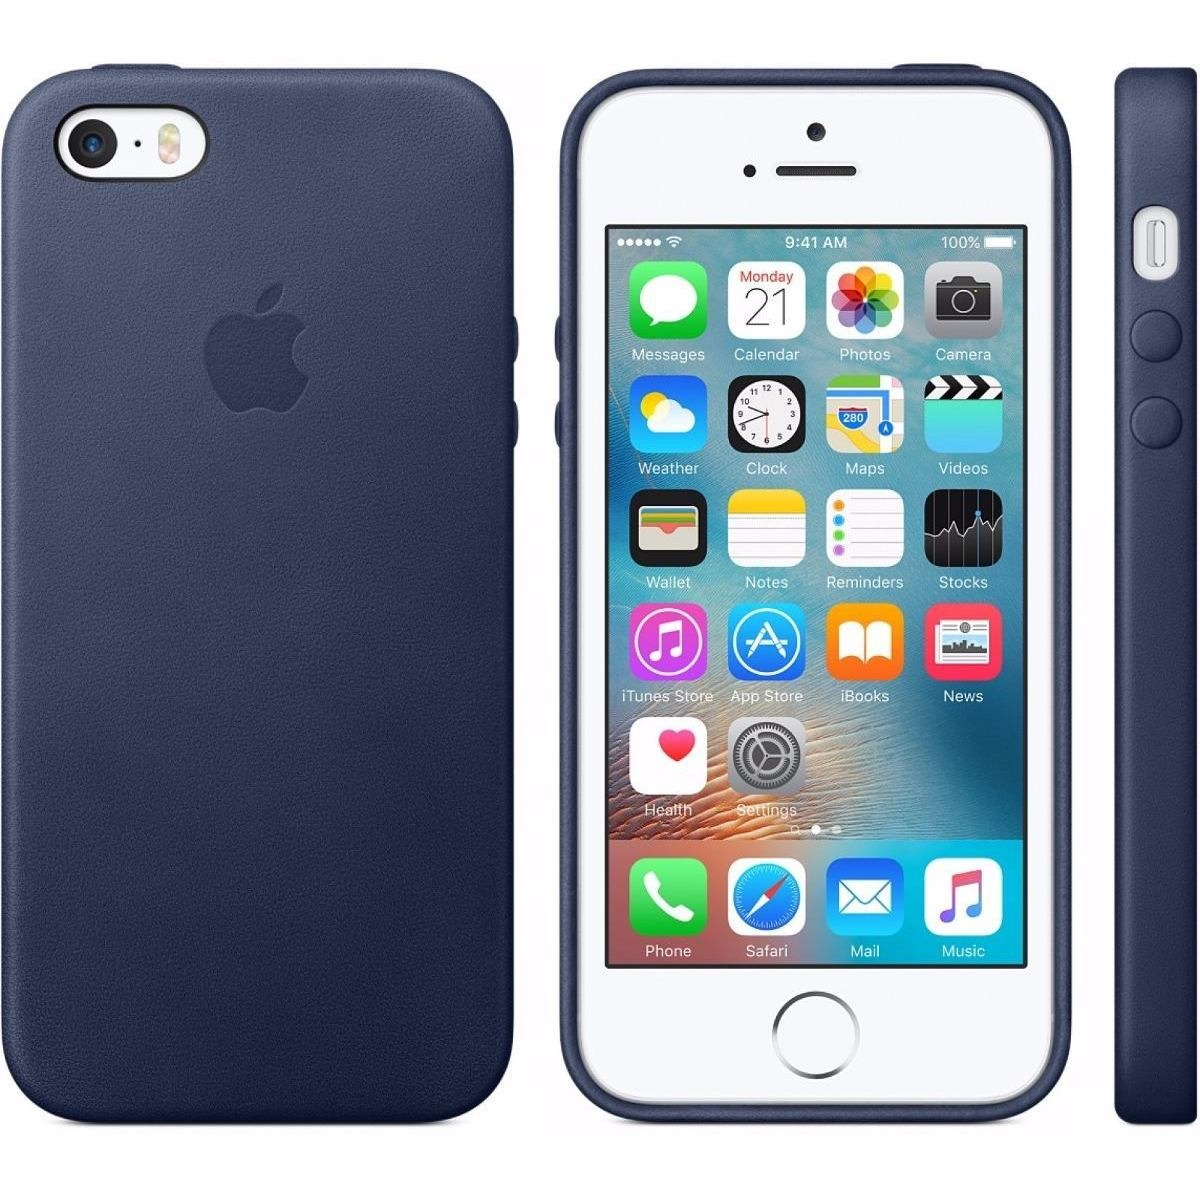 749e6500686 Funda iPhone 5 5s Se Apple Cuero Leather Case Azul - $ 500,00 en ...